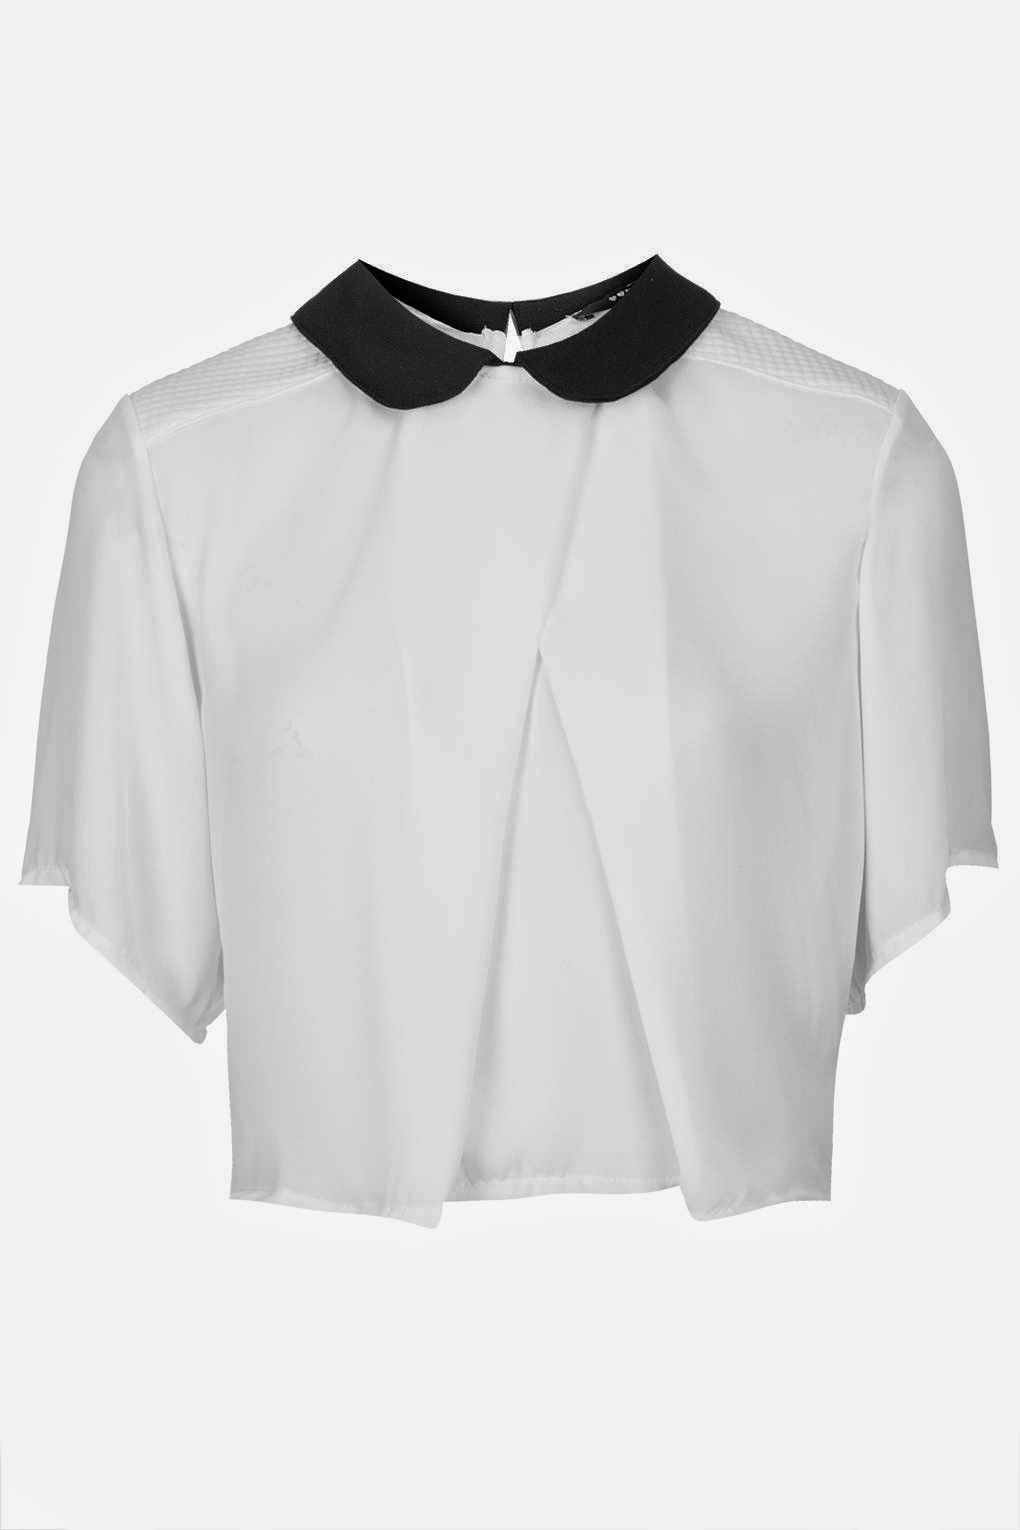 white cropped shirt black collar